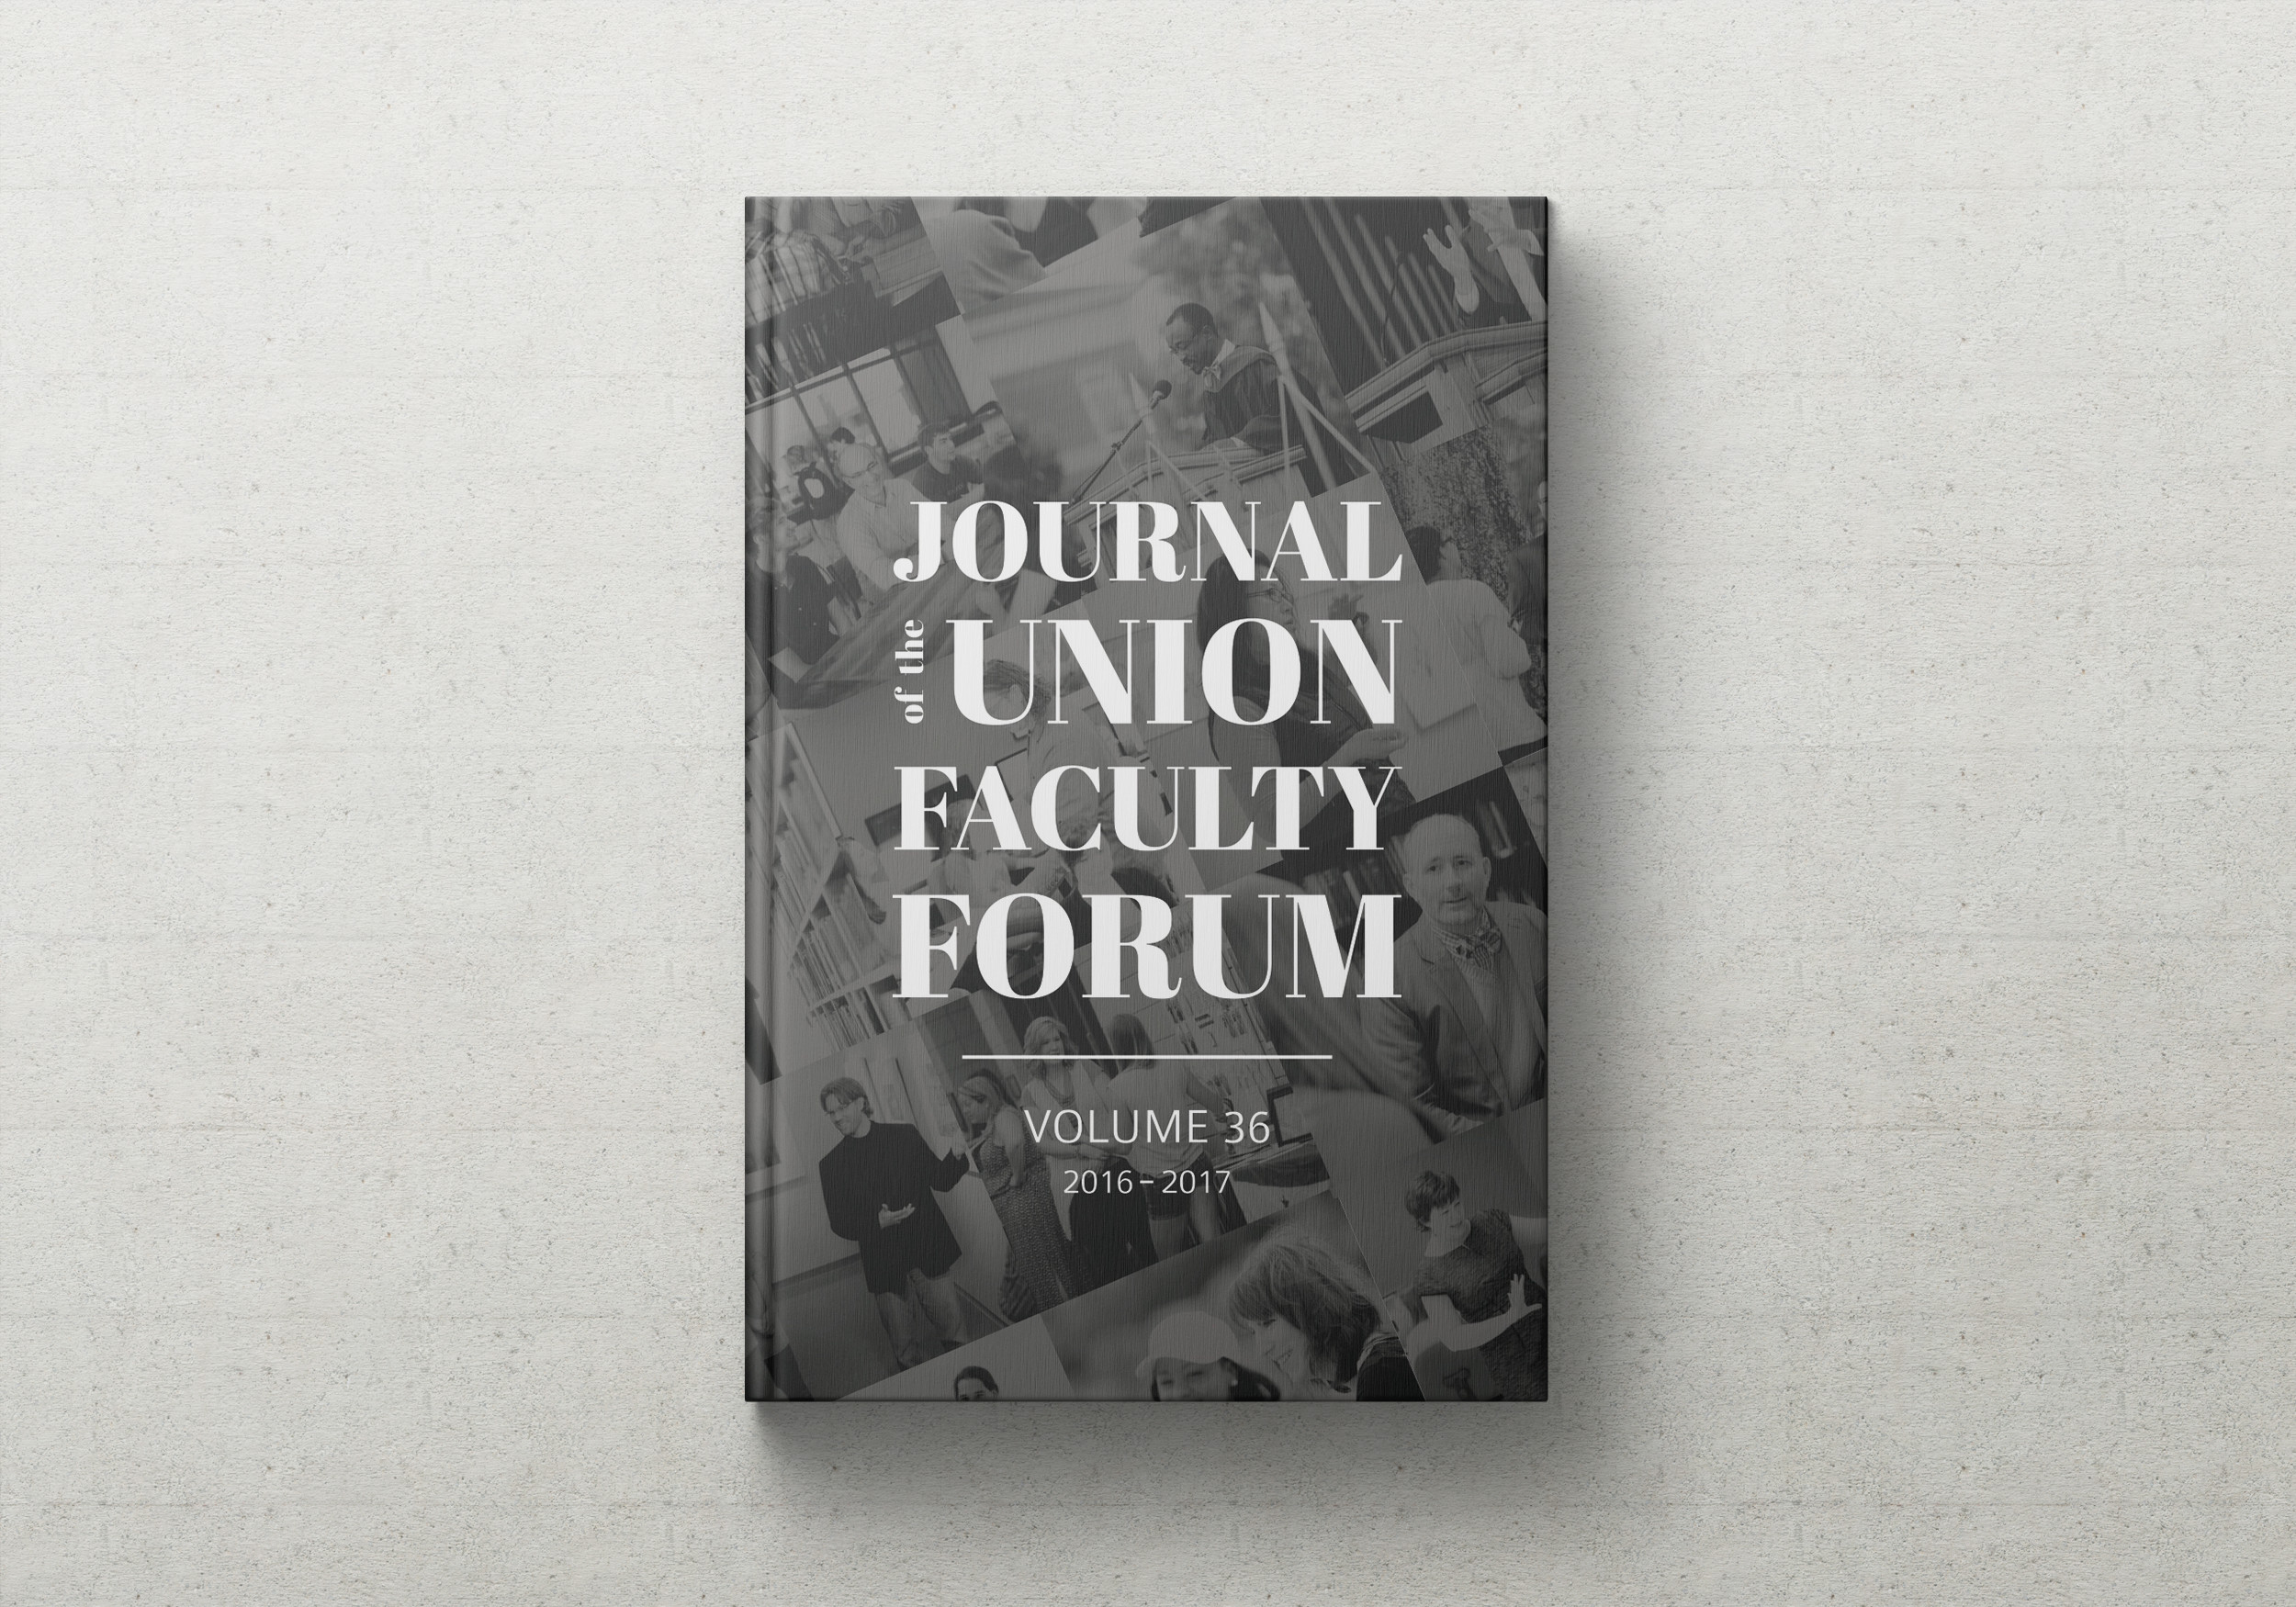 Journal of the Union Faculty Forum